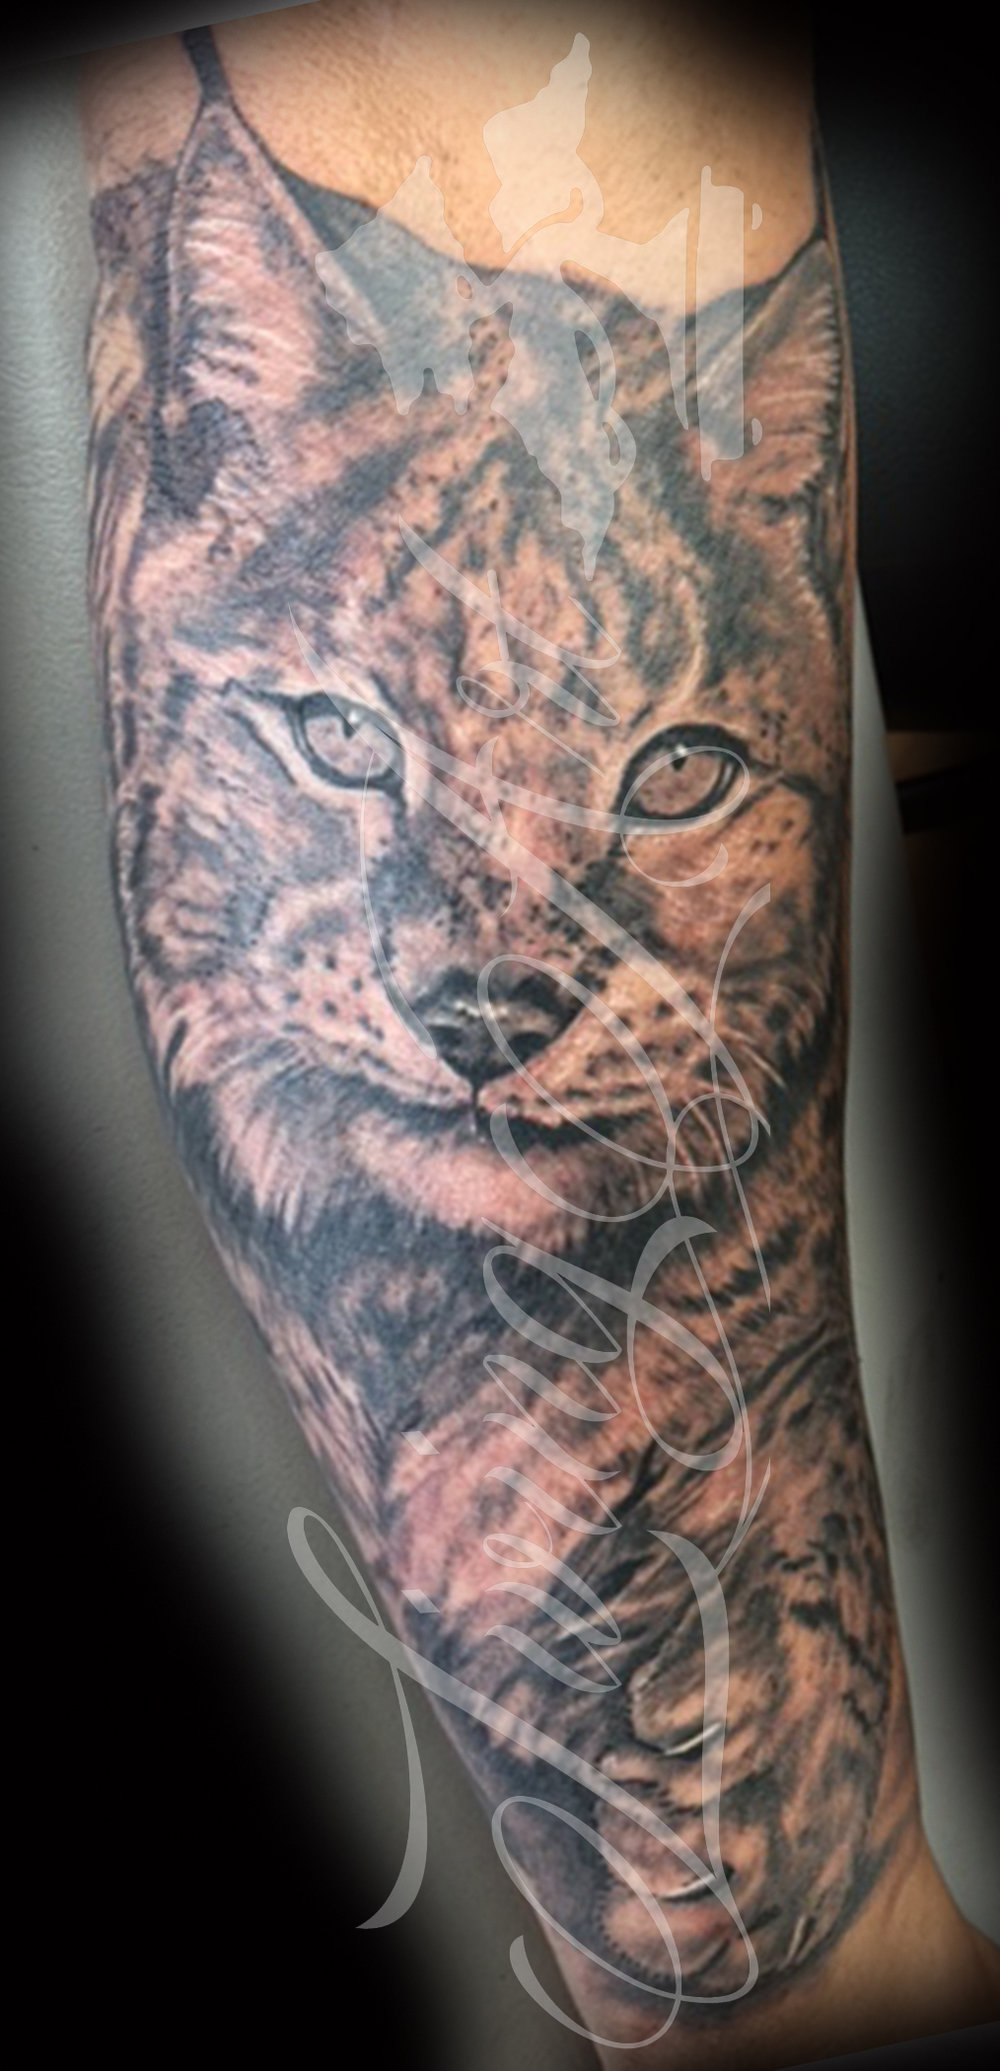 chris owen tattoo_bob cat tattoo_lynx tattoo_chris owen black and grey tattoo.jpg